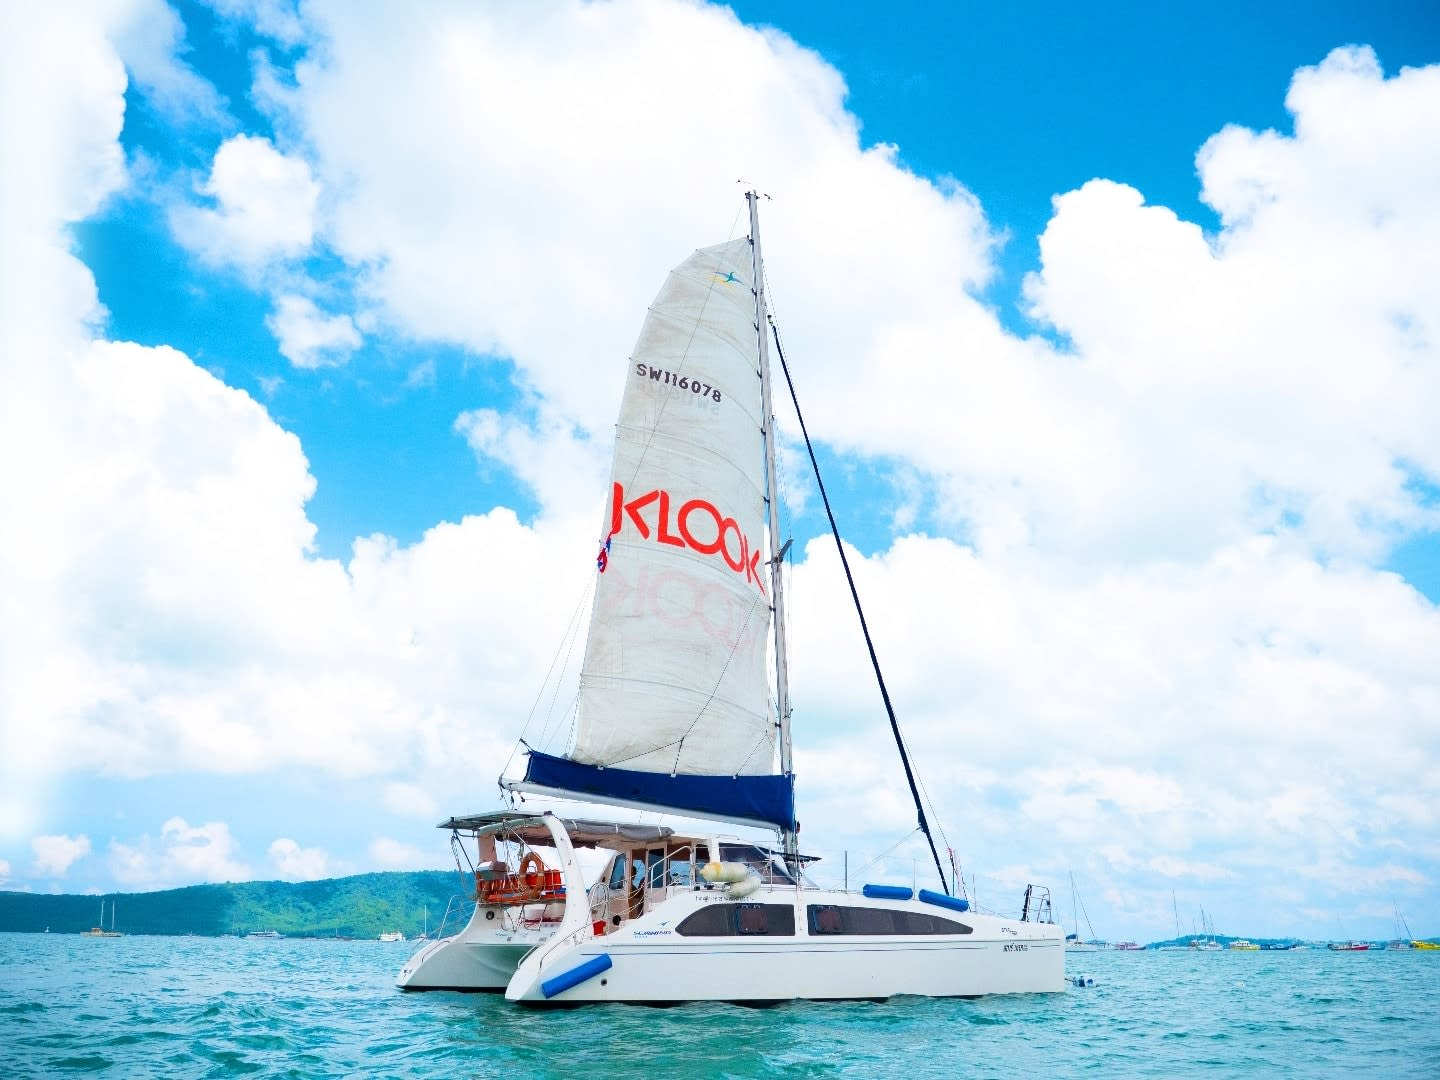 Klook Catamaran Yacht Phuket Islands